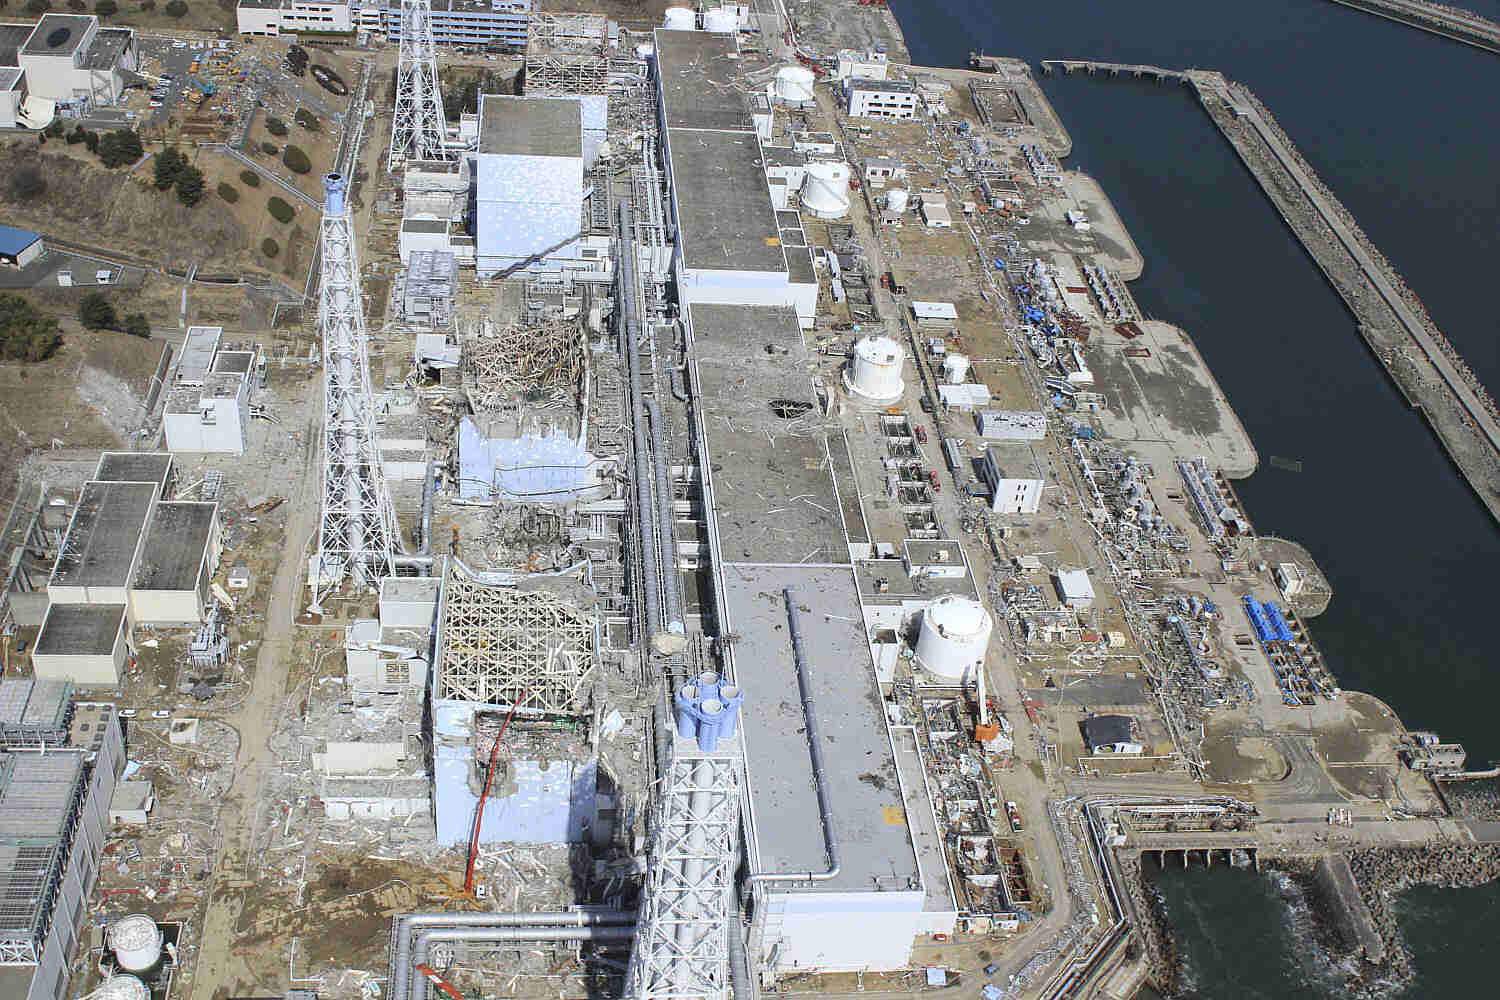 Aerial photo the crippled Fukushima Dai-ichi nuclear power plant